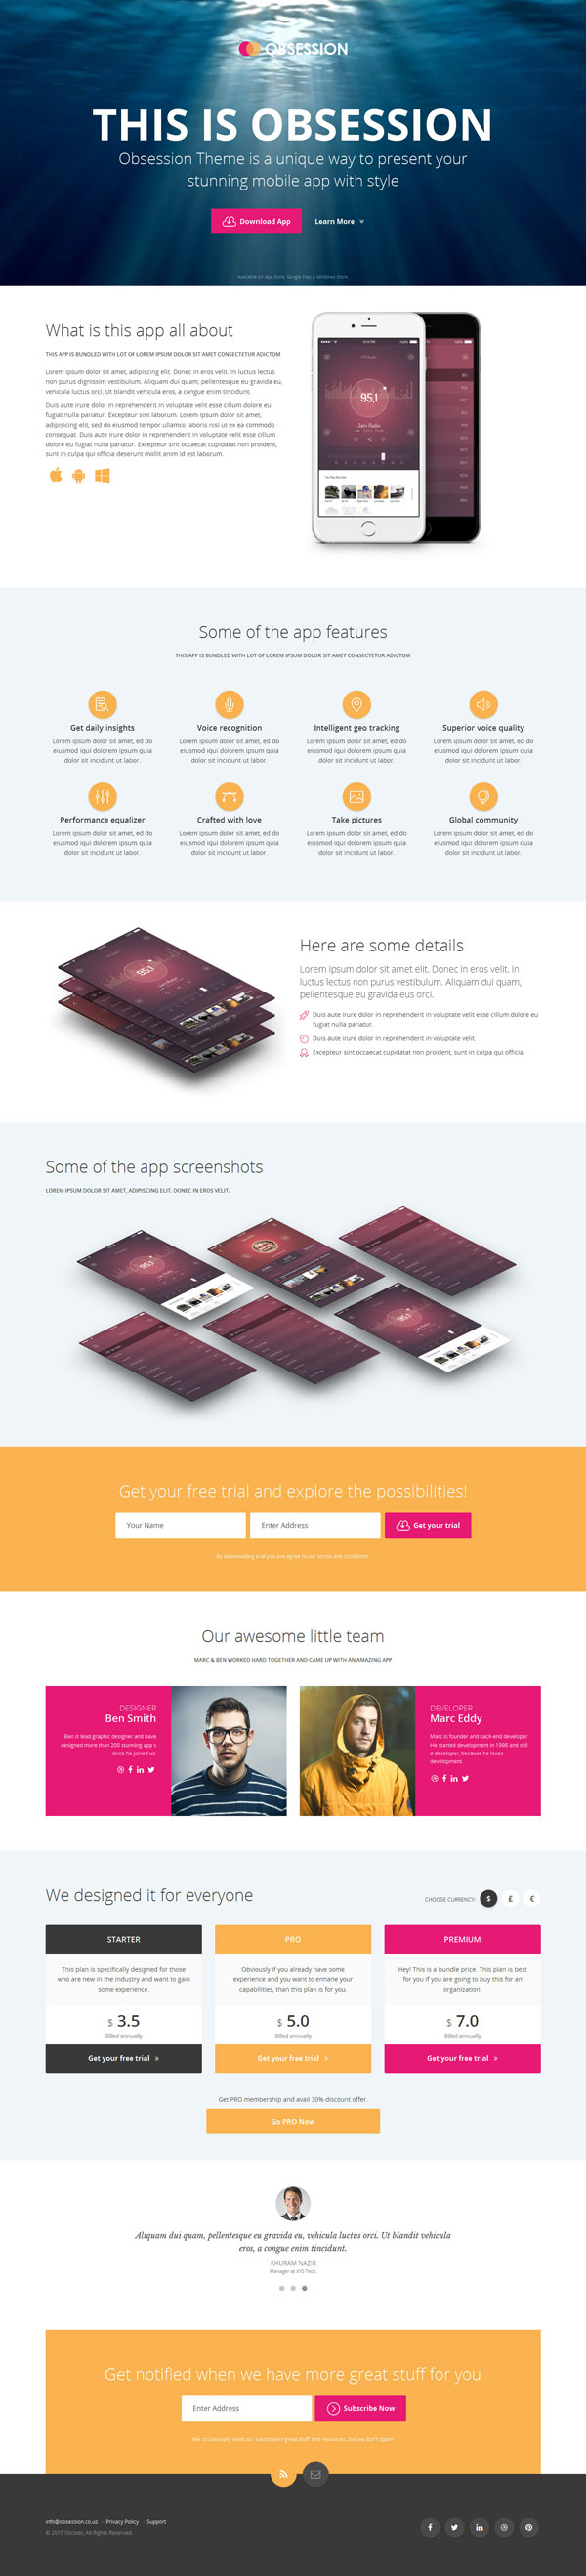 Obsession - HTML5 Bootstrap App Landing Page